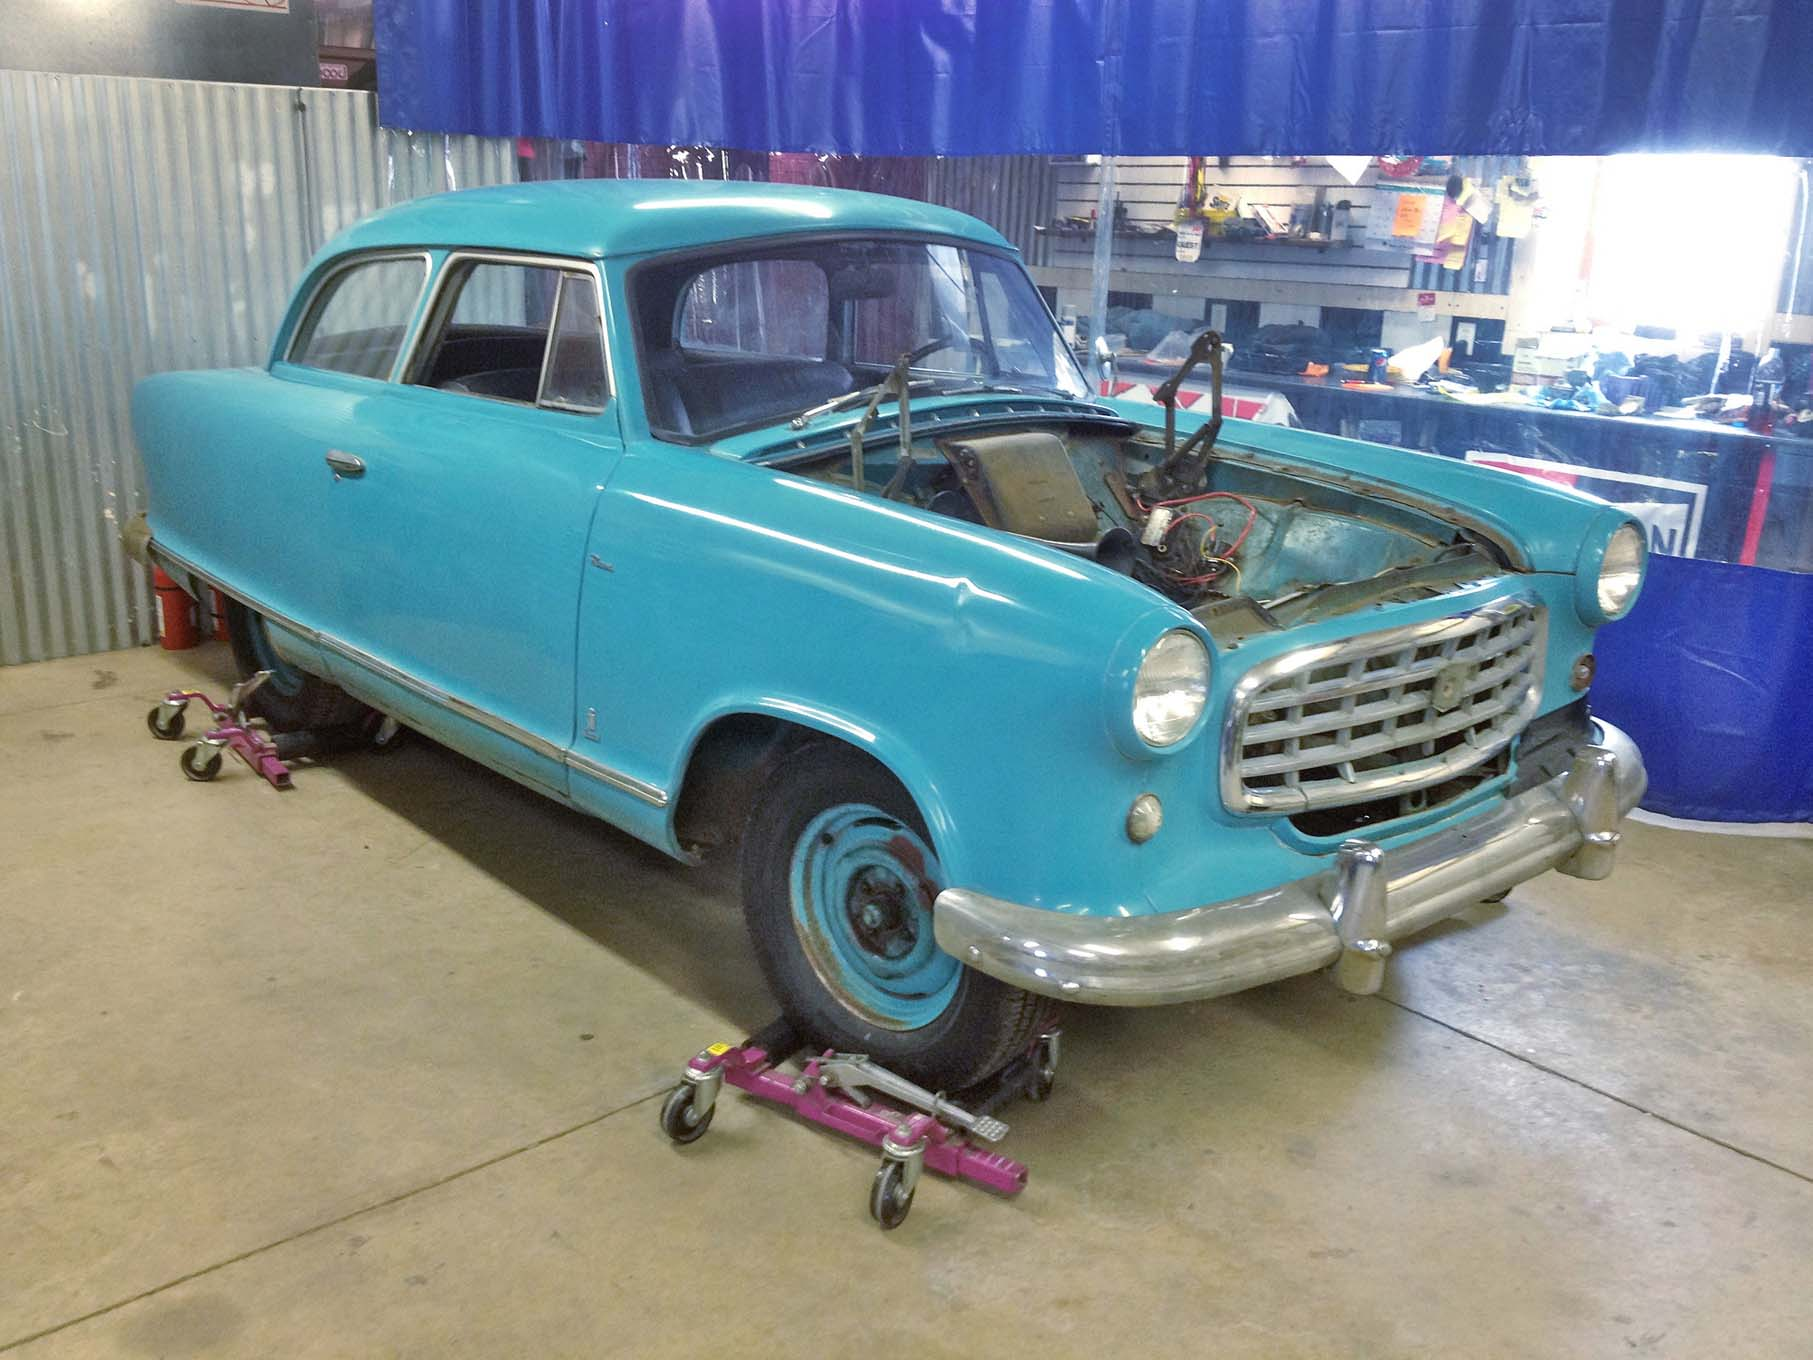 Here's the Nash as Tinberg purchased it from eBay, a sweet little car that had been repainted in its original turquoise color in the 1970s.